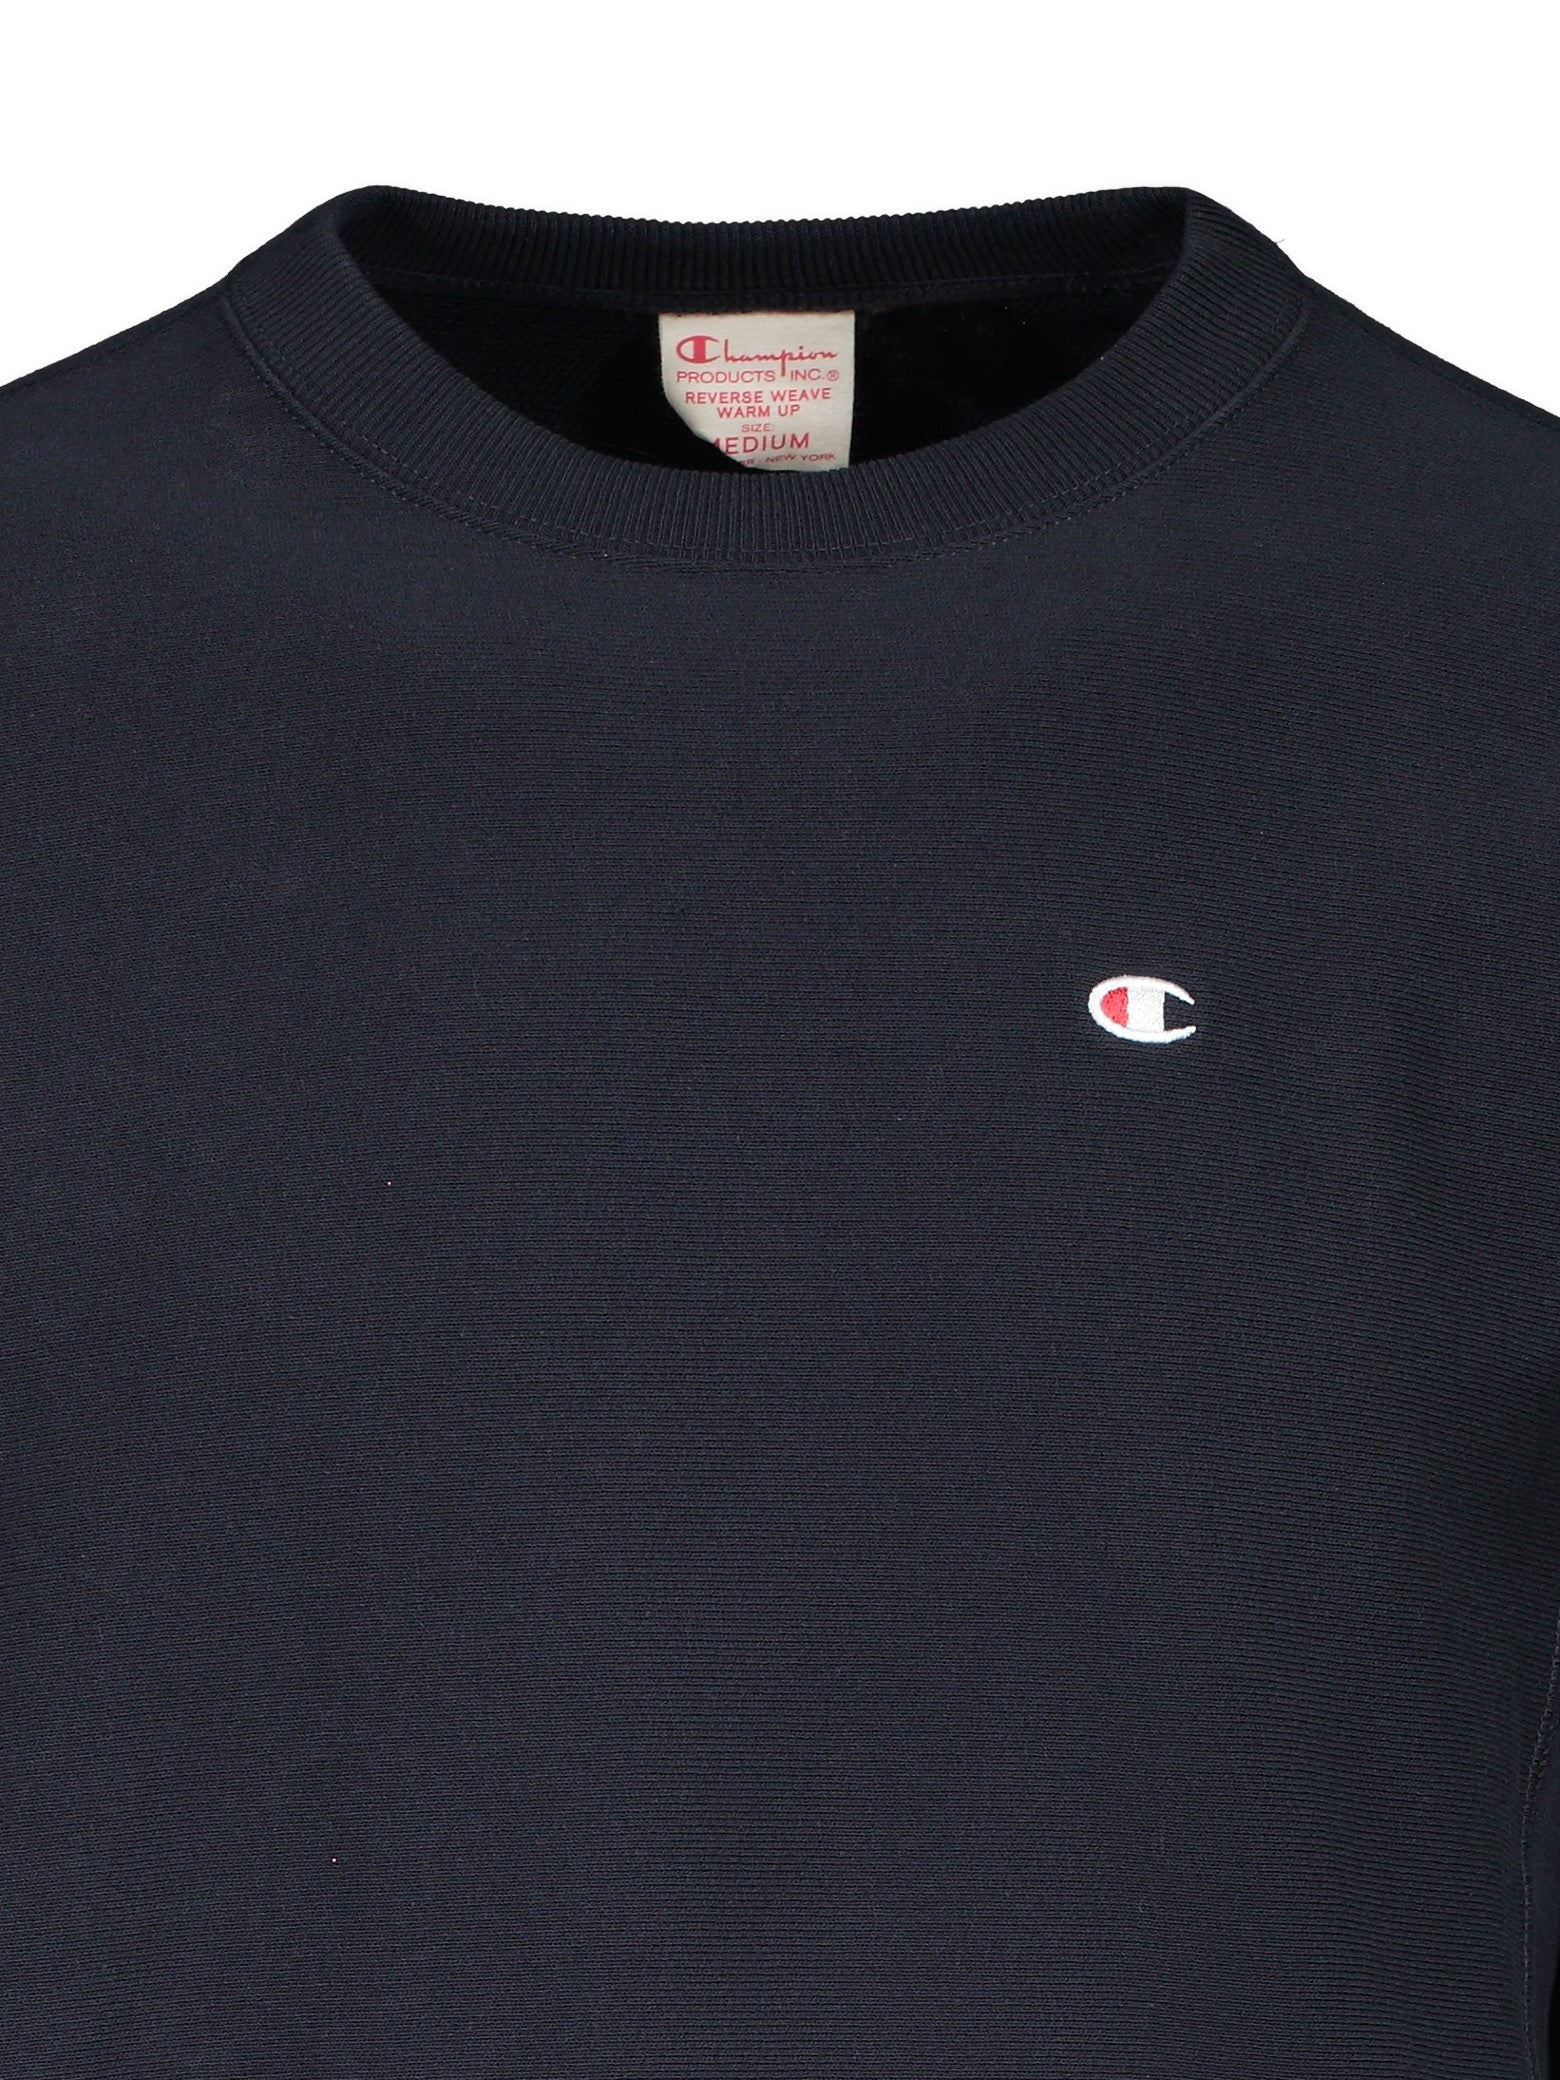 Reverse Weave Terry Crew C Patch